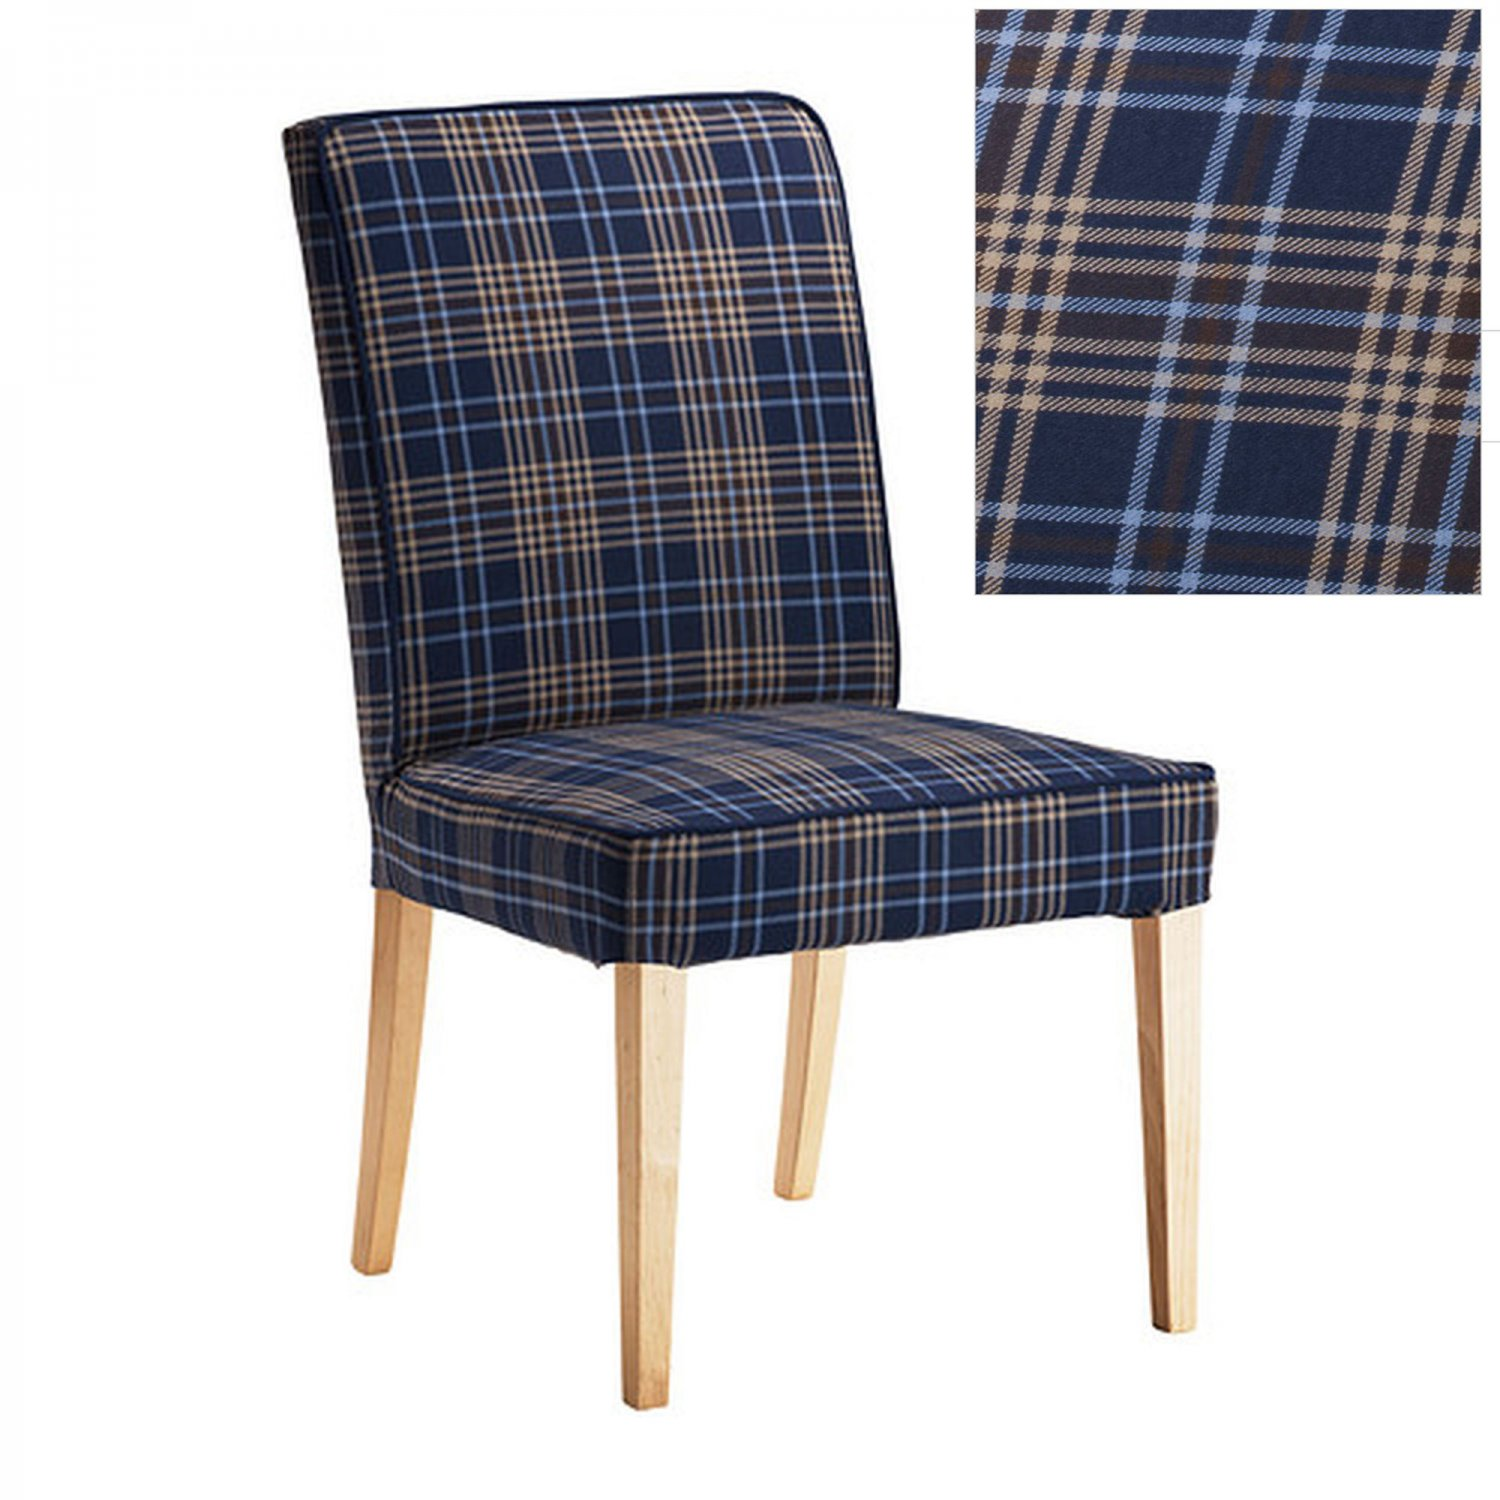 ikea henriksdal rutna multicolor blue plaid chair. Black Bedroom Furniture Sets. Home Design Ideas